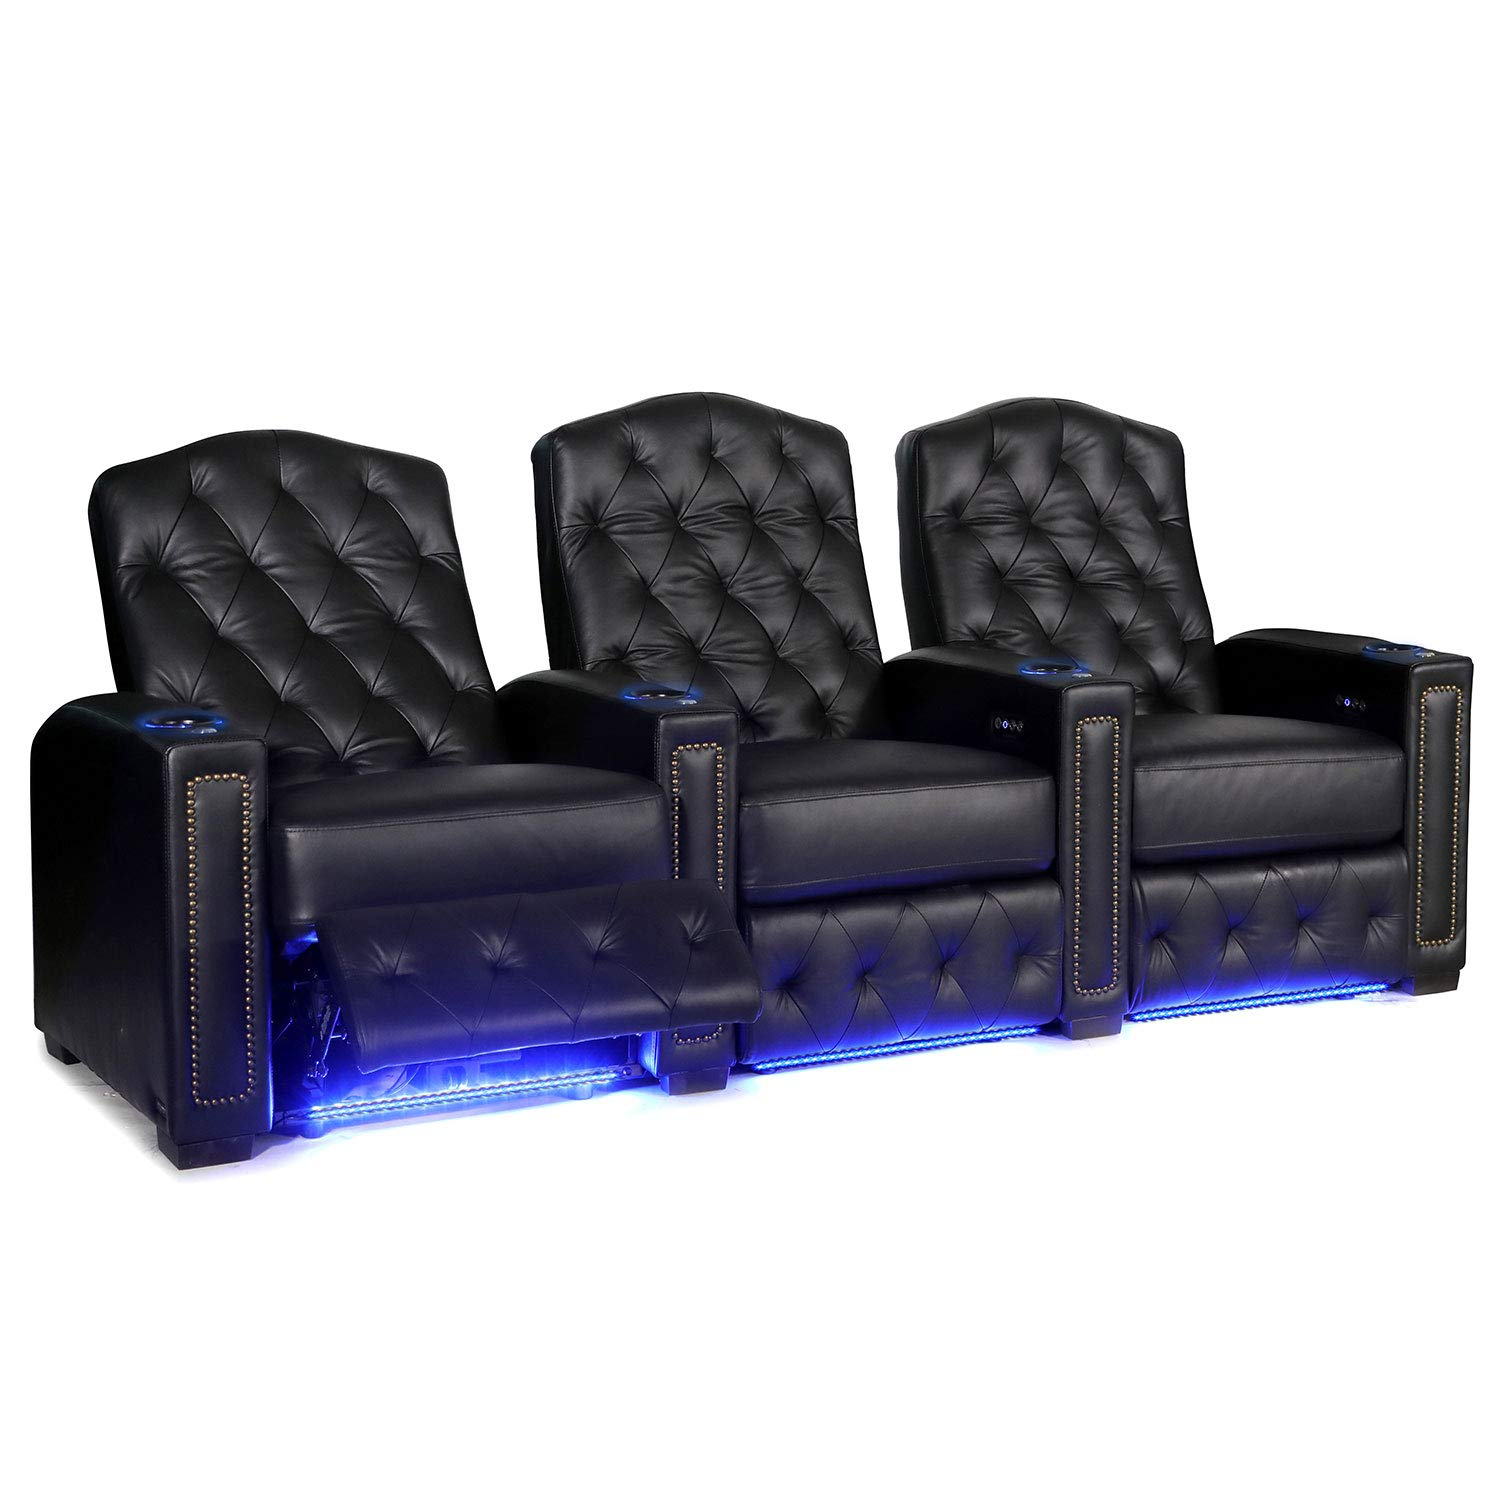 Octane Regal XL250 Power Recline Black Leather Home Theater Seating (Set of 3) by Octane Seating